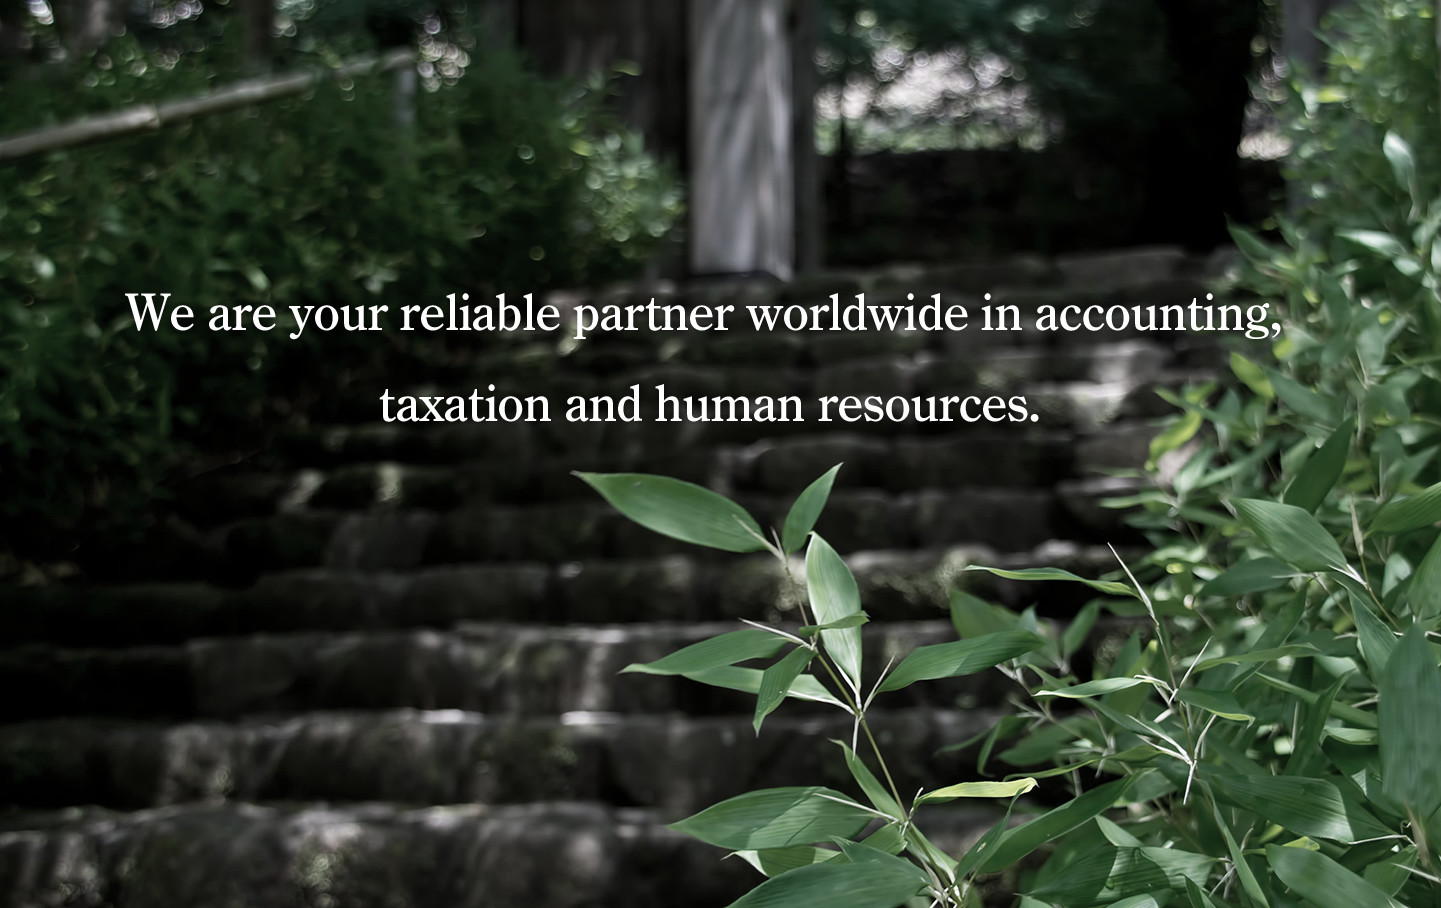 We are your reliable partner worldwide in accounting, taxation and human resources.